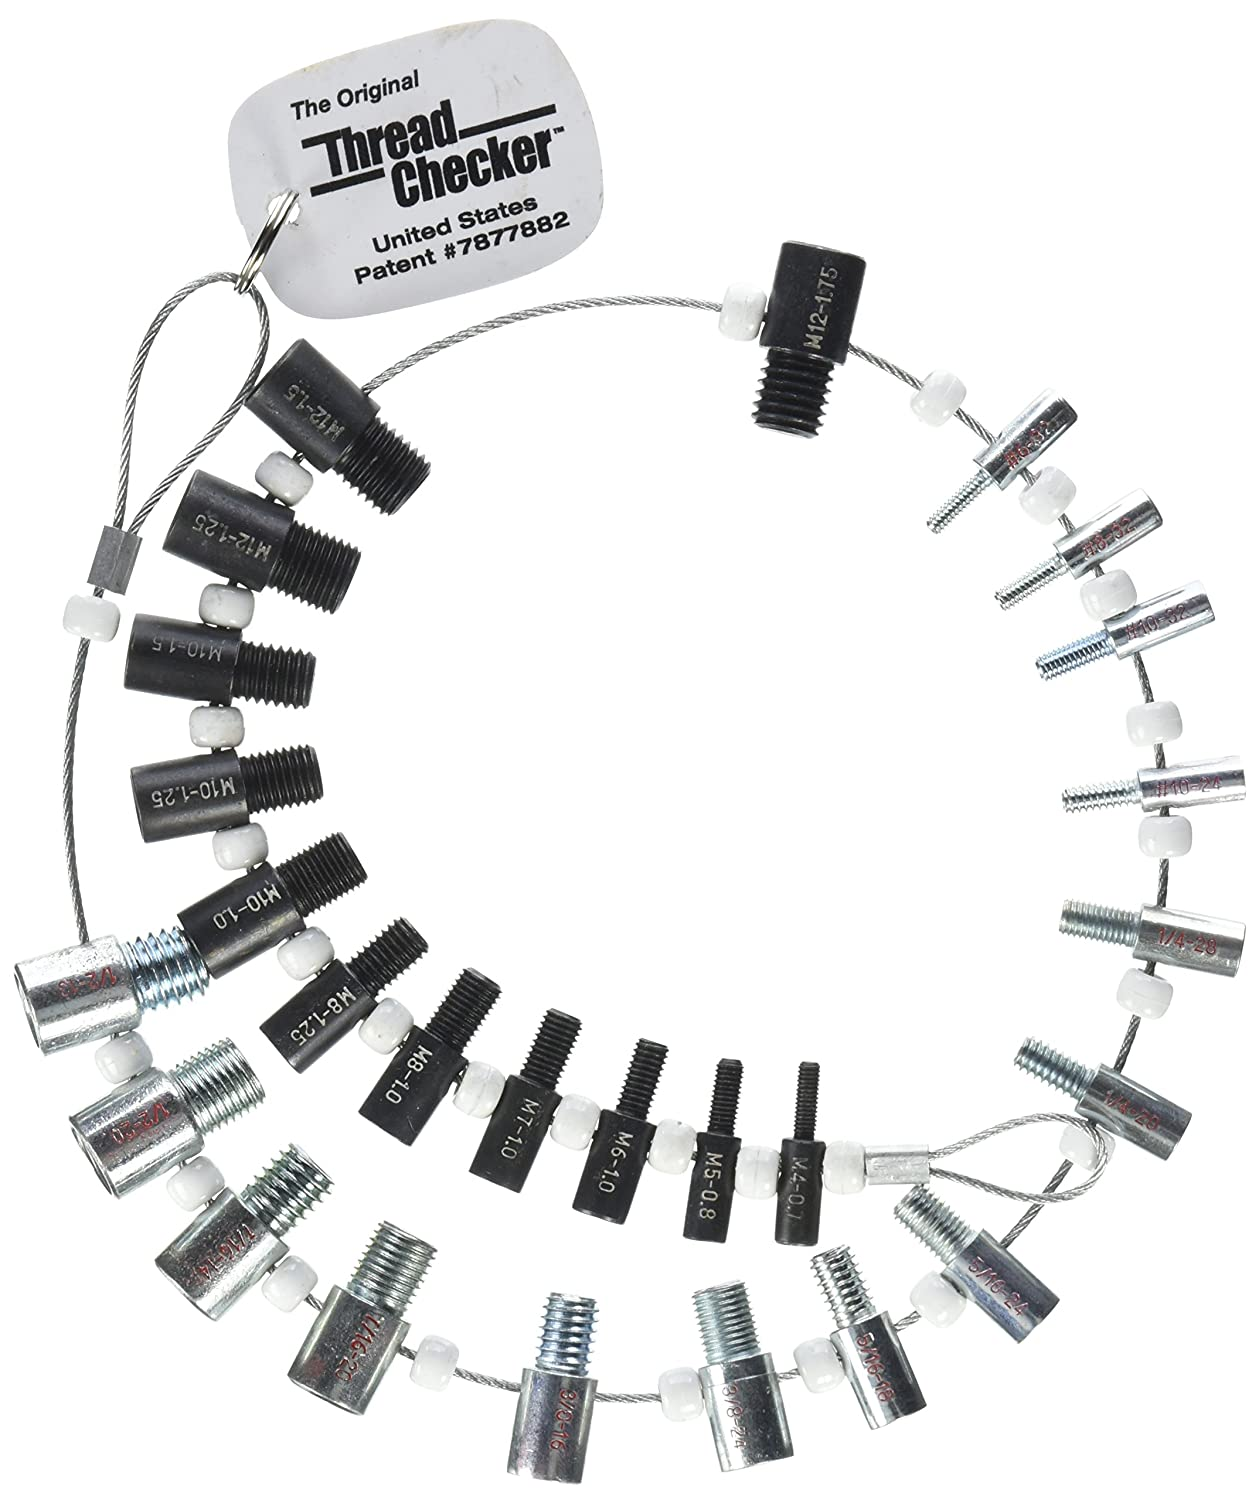 Nut Bolt Thread Checker Inch Metric Tap And Die Sets Help Wiring Up An Electric Fan